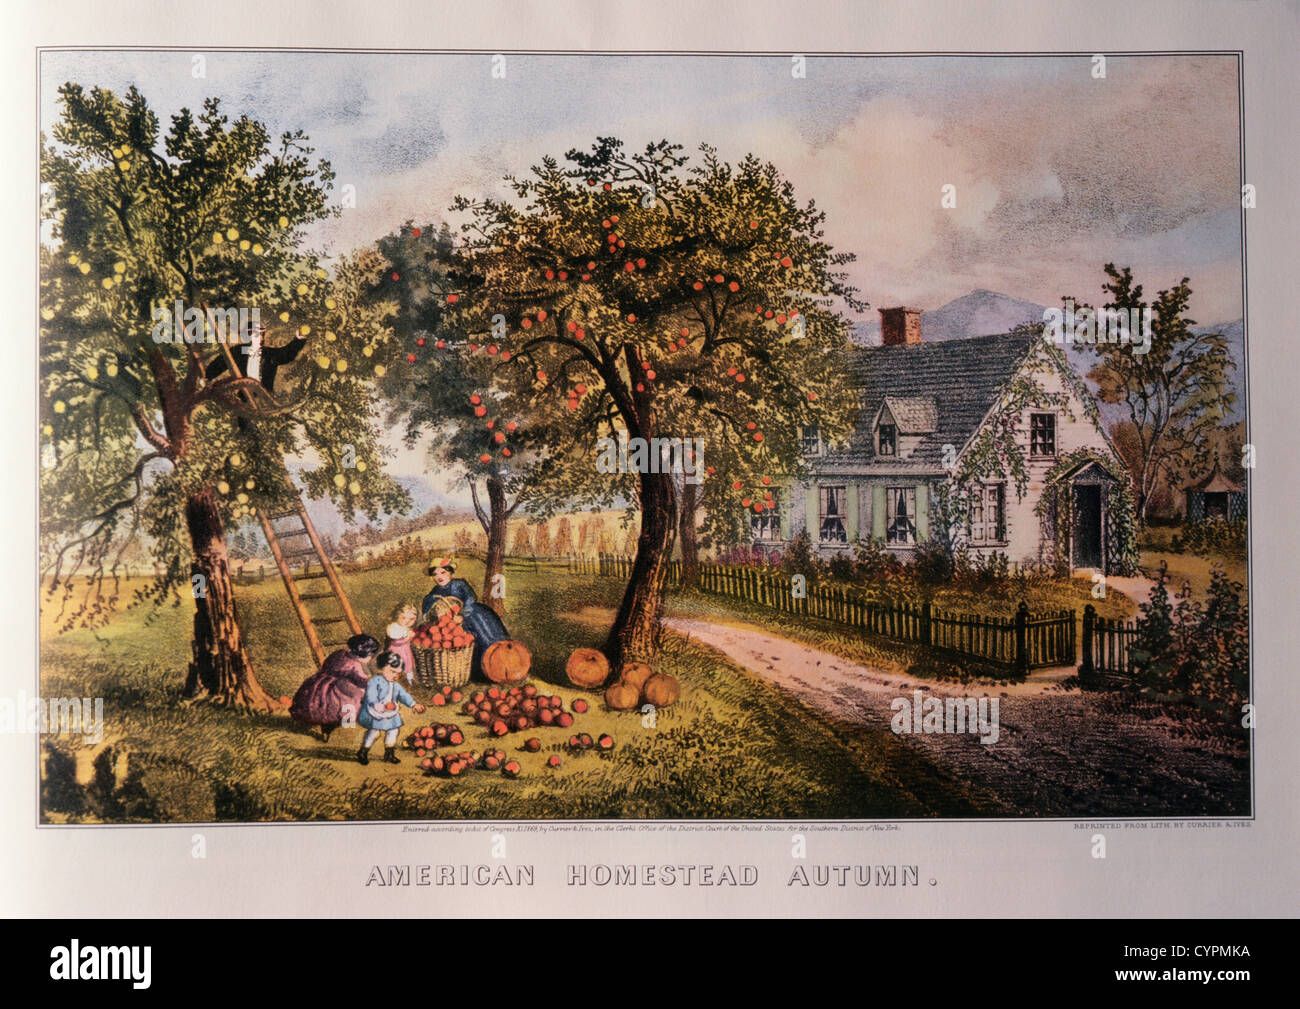 American Homestead,  Autumn, Currier & Ives, Lithograph, 1869 - Stock Image